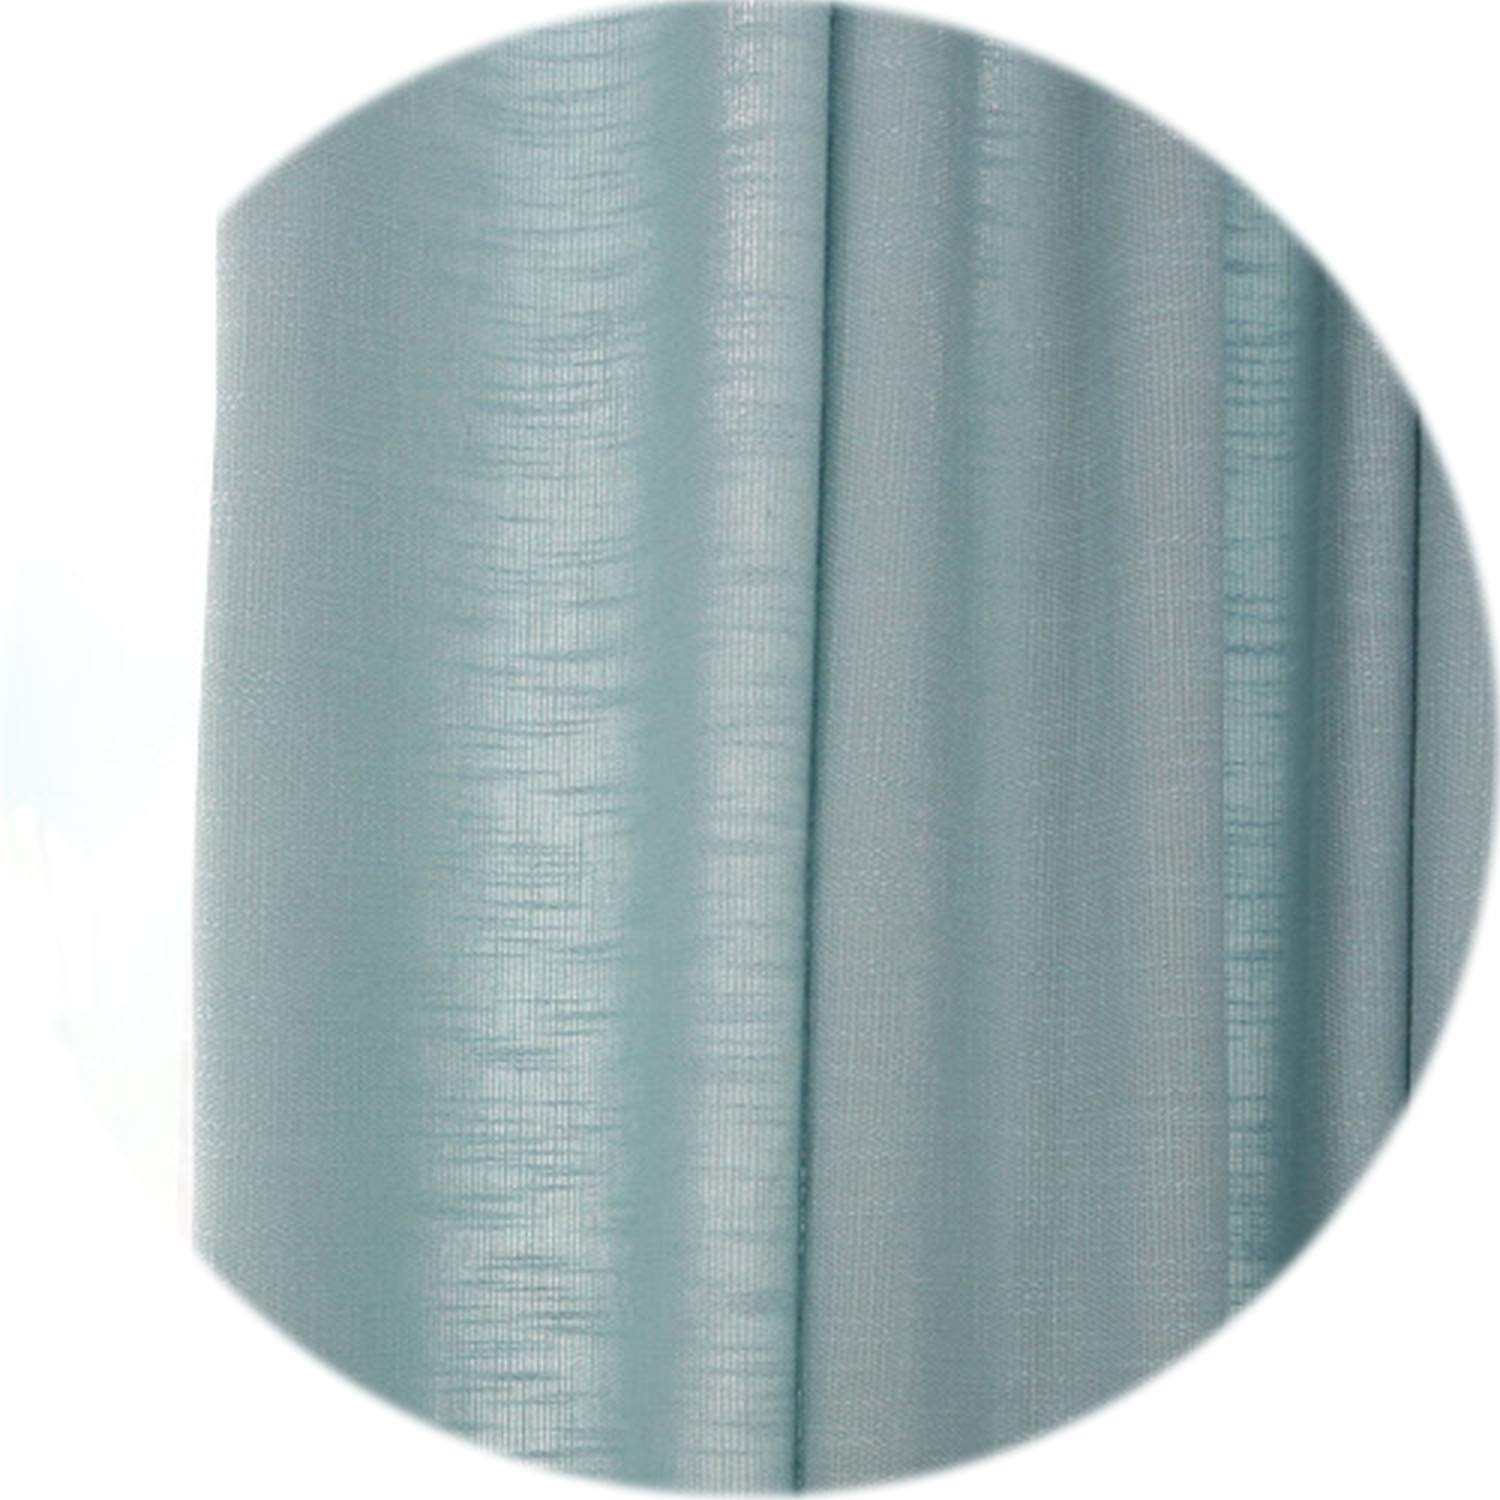 three thousand Solid Modern Curtains Decorative Door Bedroom Curtains Shade Window Fabric White Sheer Fashion Curtains for Living Room,Blue Thick,W500cm L270cm,3 Tab Top